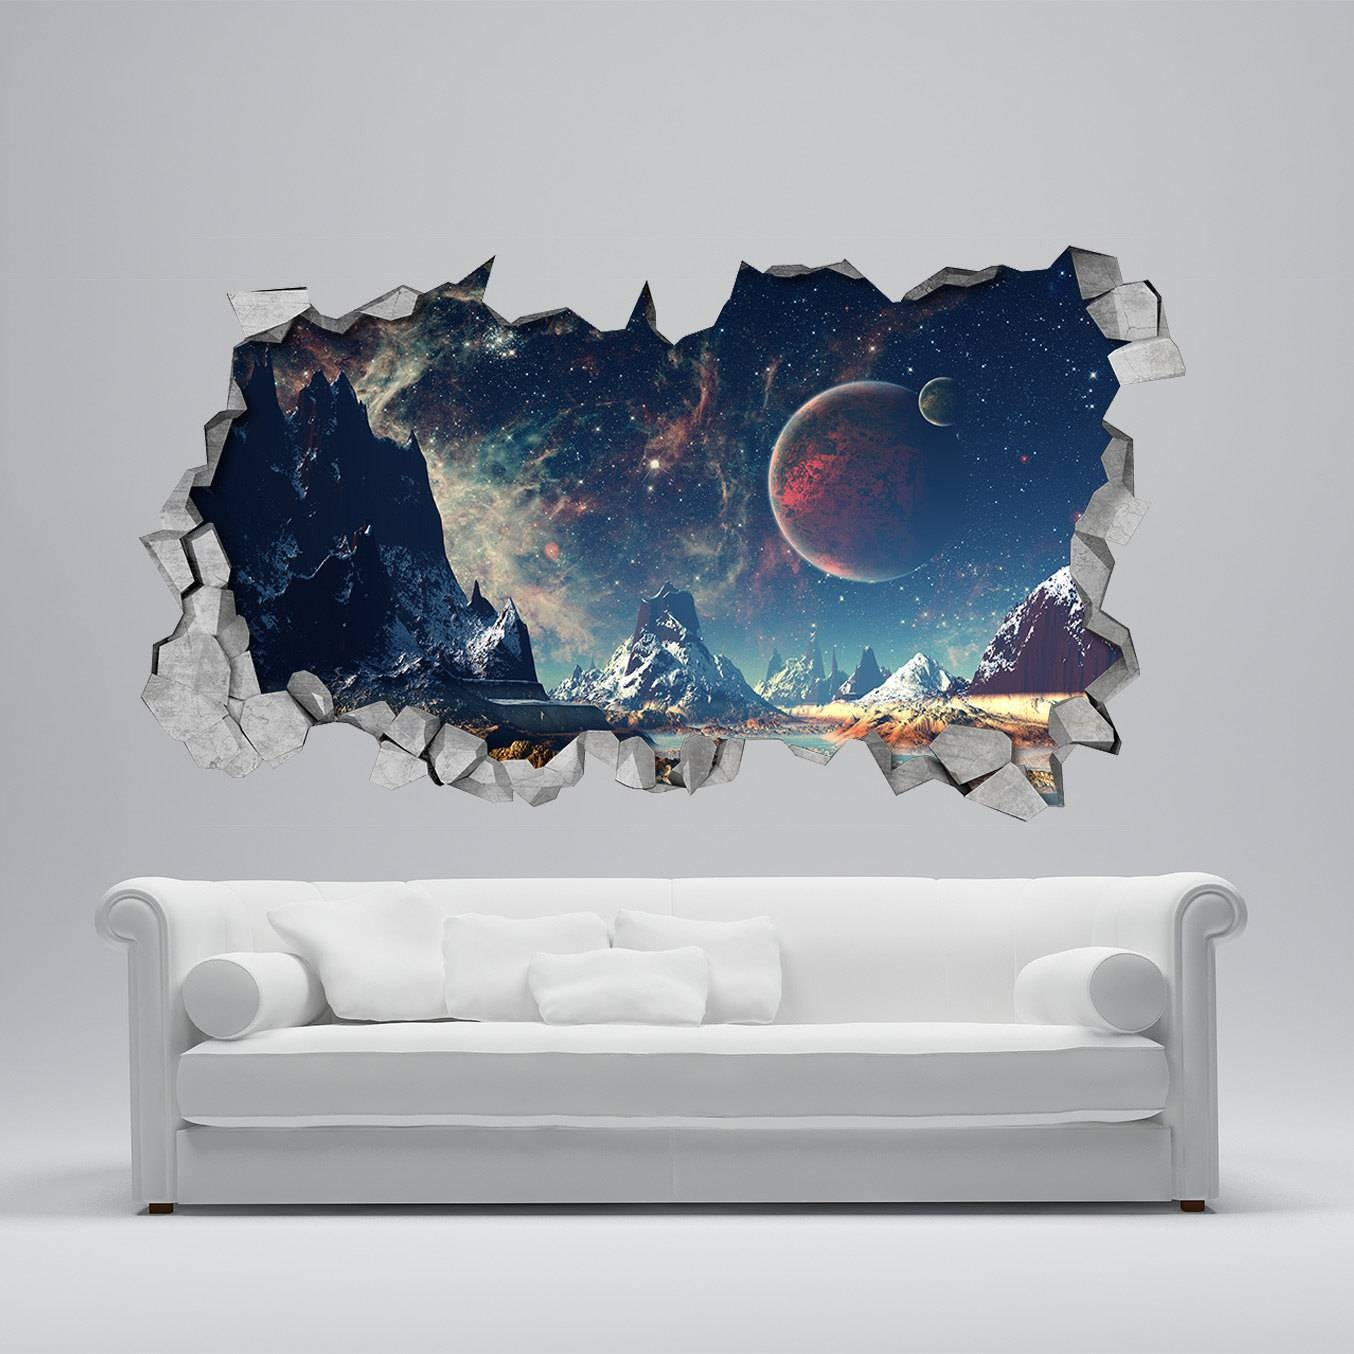 Space Broken Wall Decal 3D Wallpaper 3D Wall Decals 3D With Regard To Current 3D Wall Art (View 20 of 30)